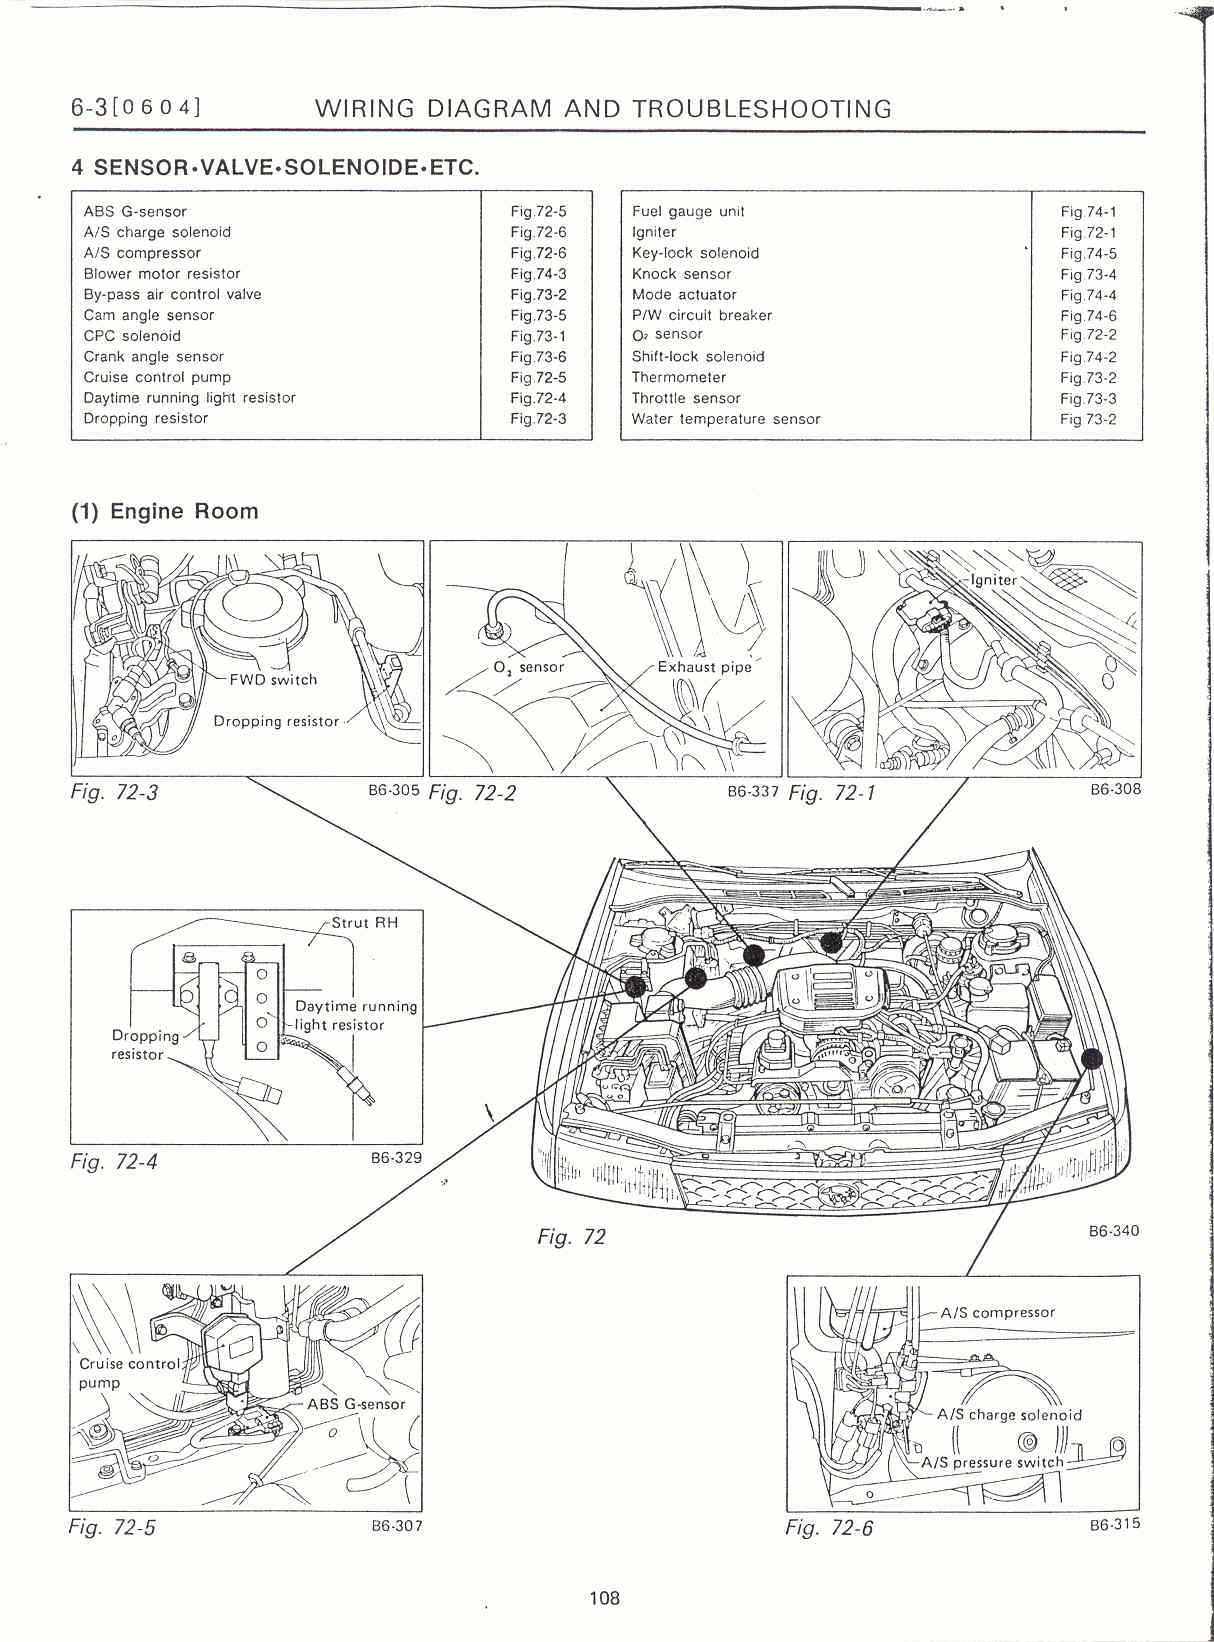 Surrealmirage Subaru Legacy Swap Electrical Info Notes Ez30 Wiring Diagram Engine Room